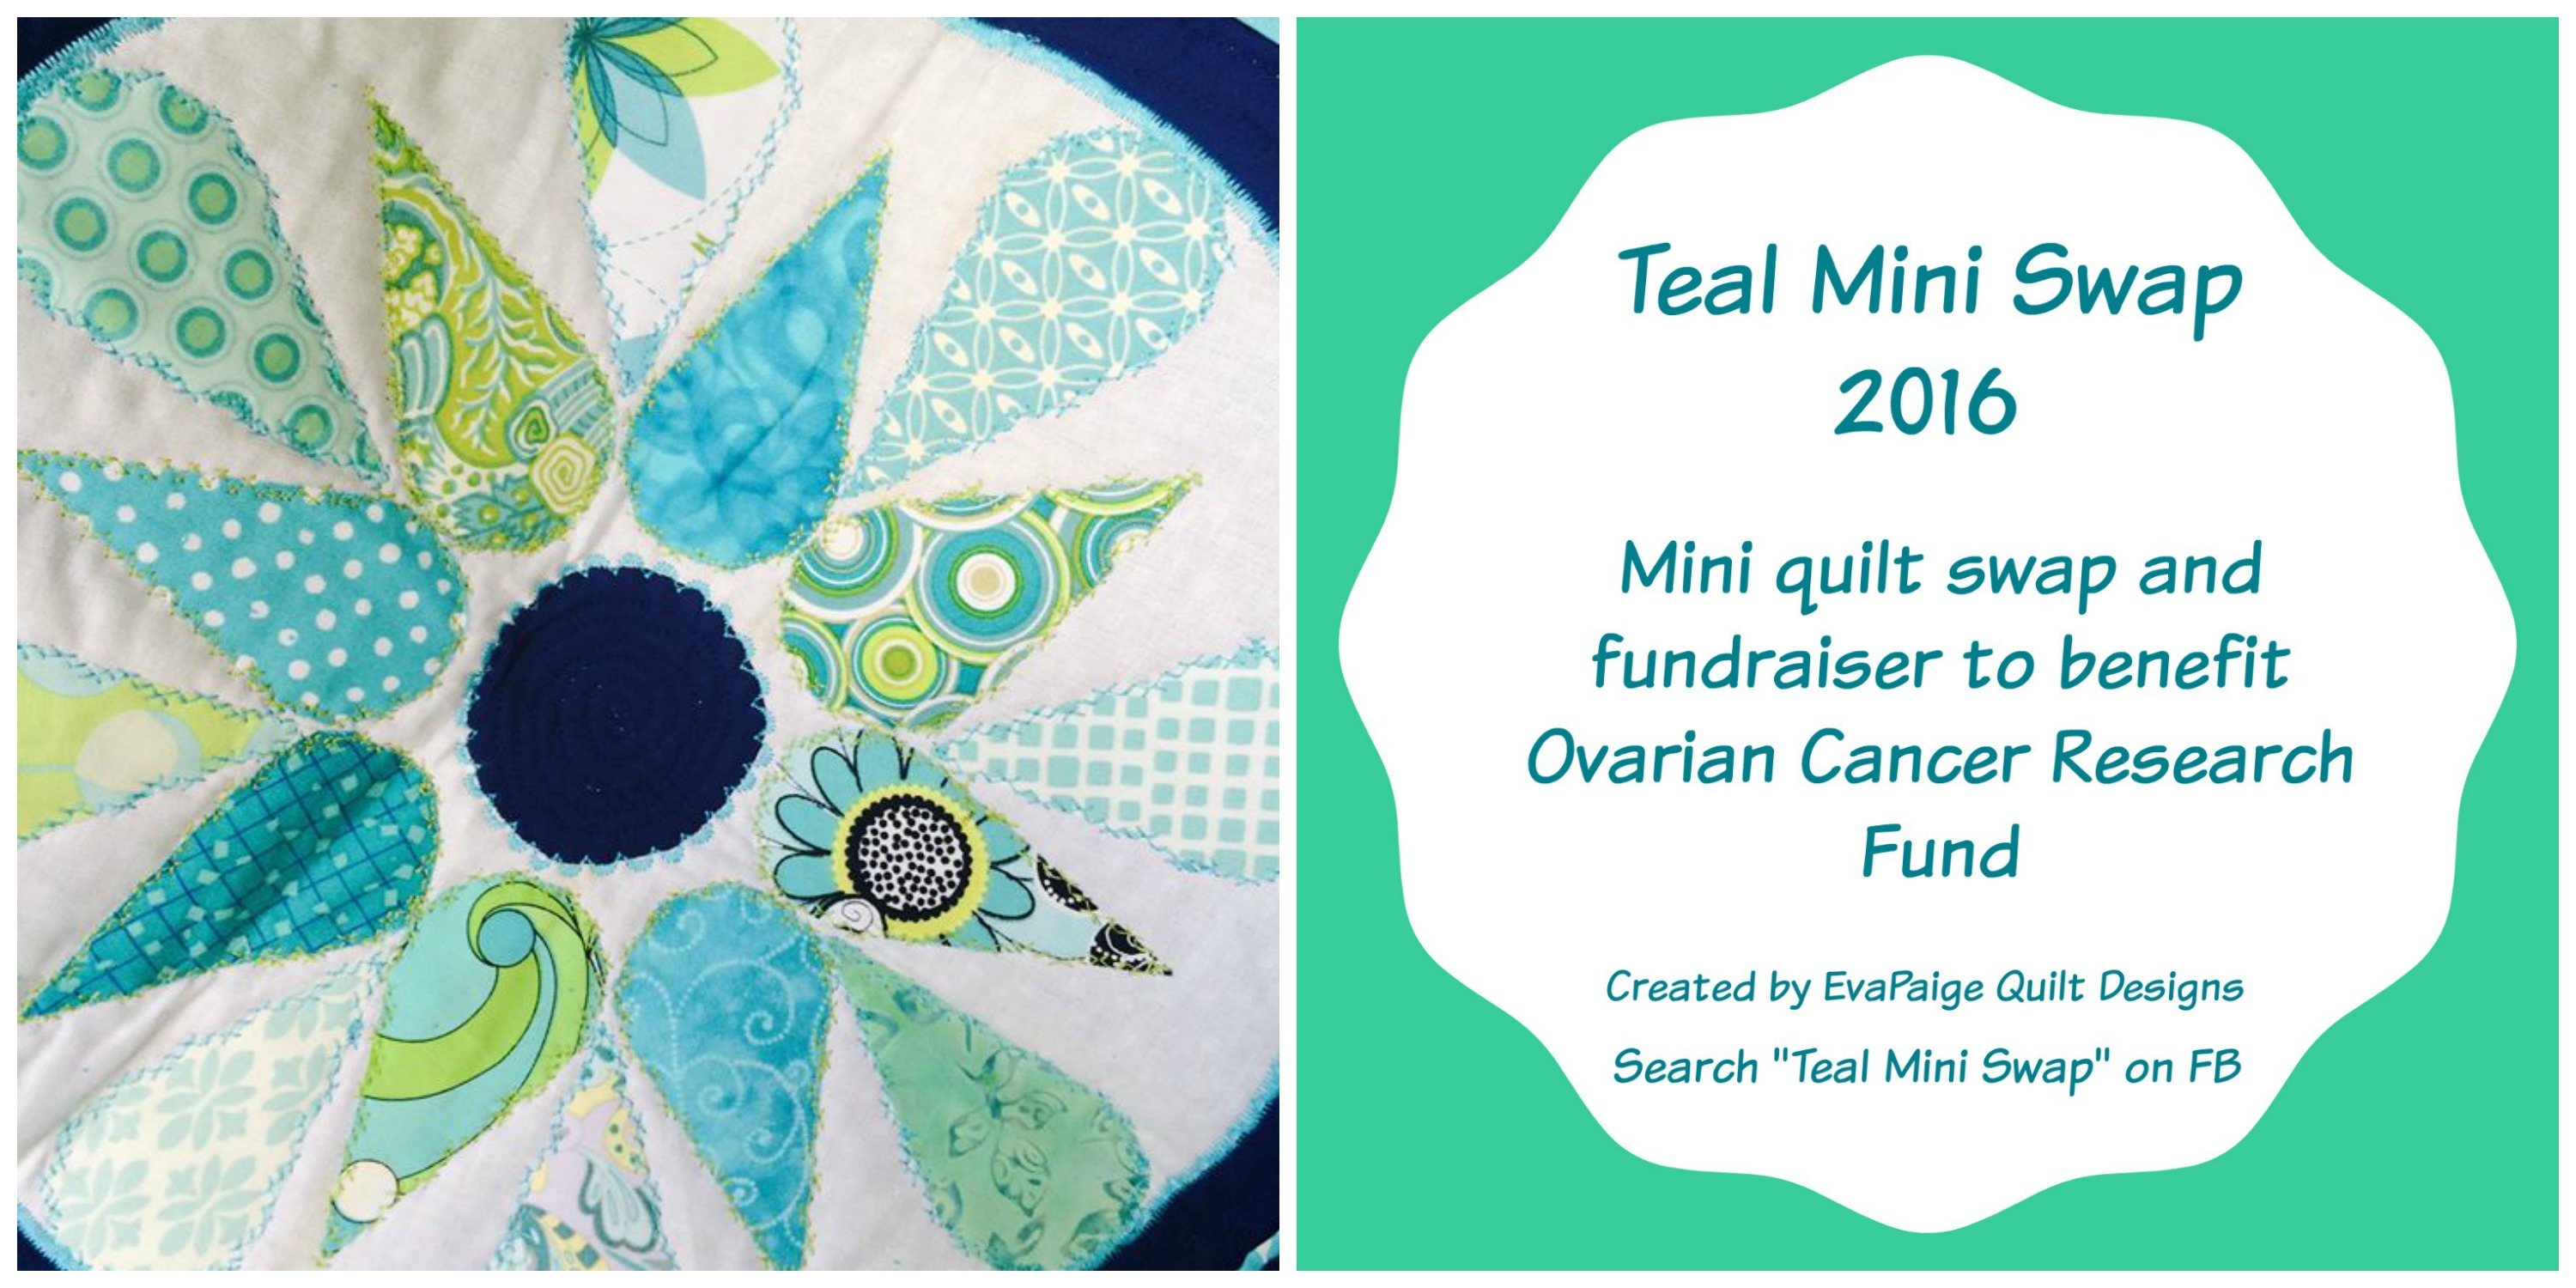 Teal Mini Swap for Ovarian Cancer Research